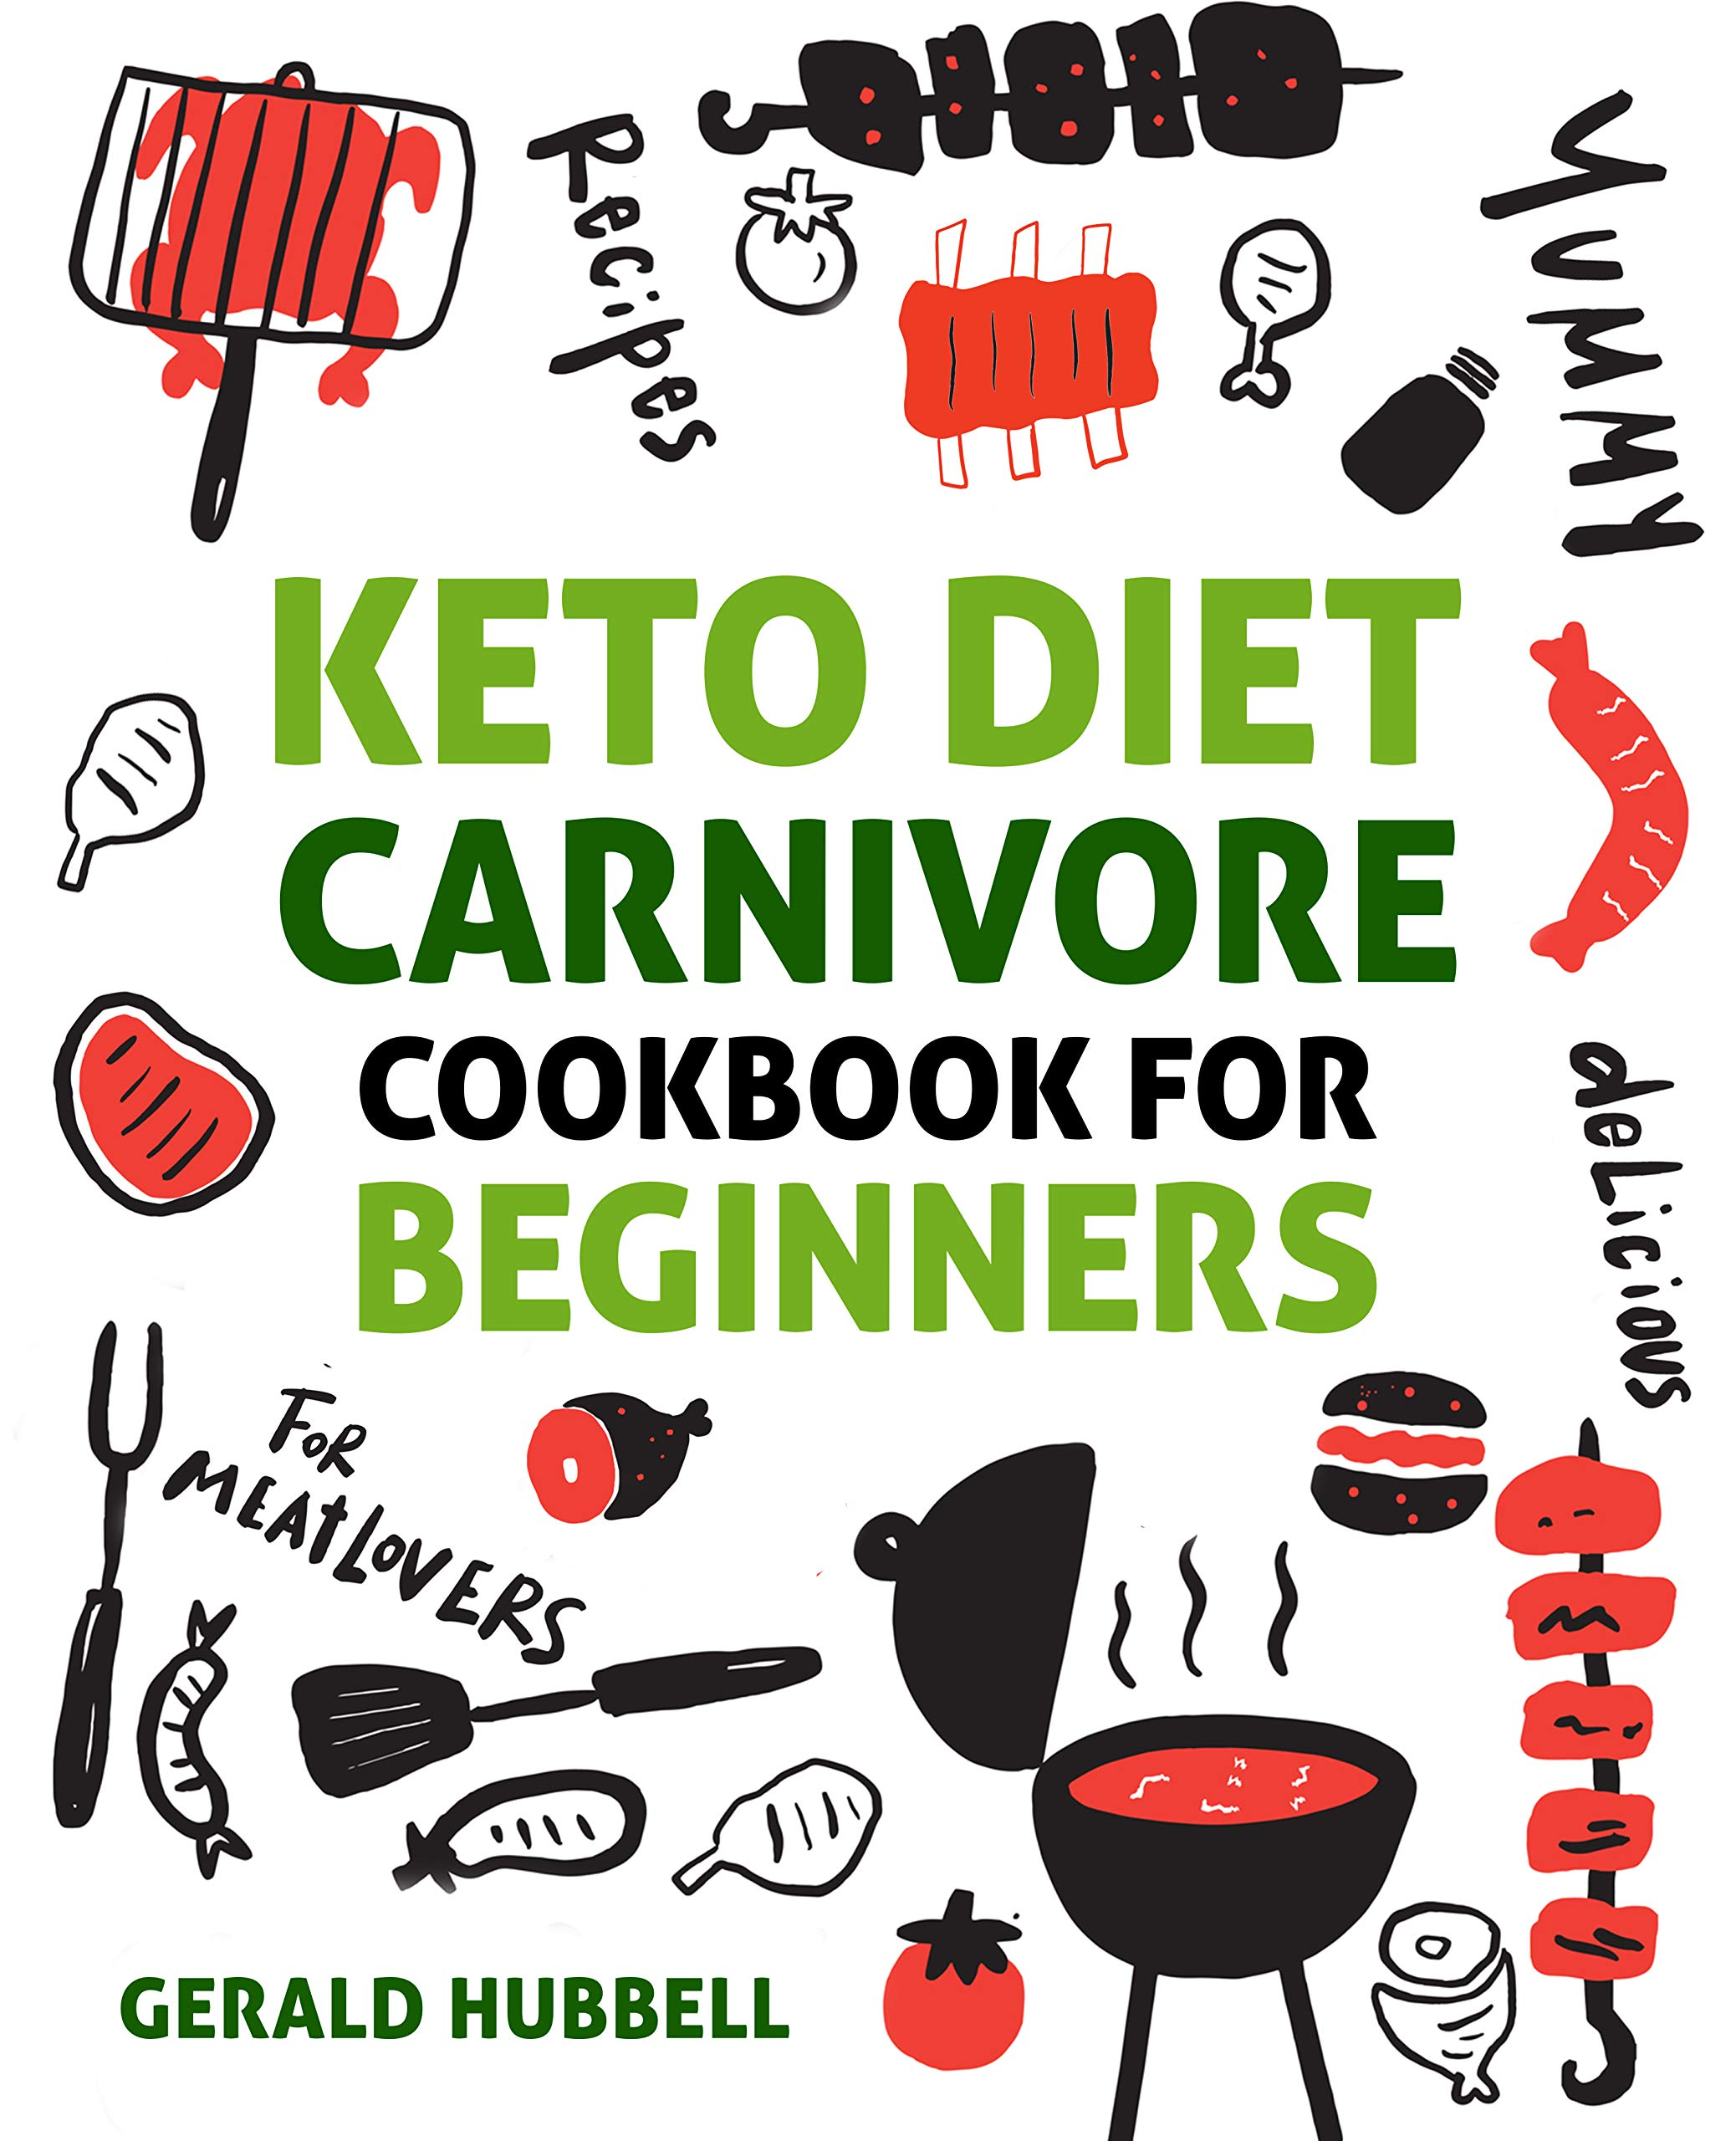 Keto Diet Carnivore Cookbook For Beginners: Yummy & Delicious Recipes For Meatlovers